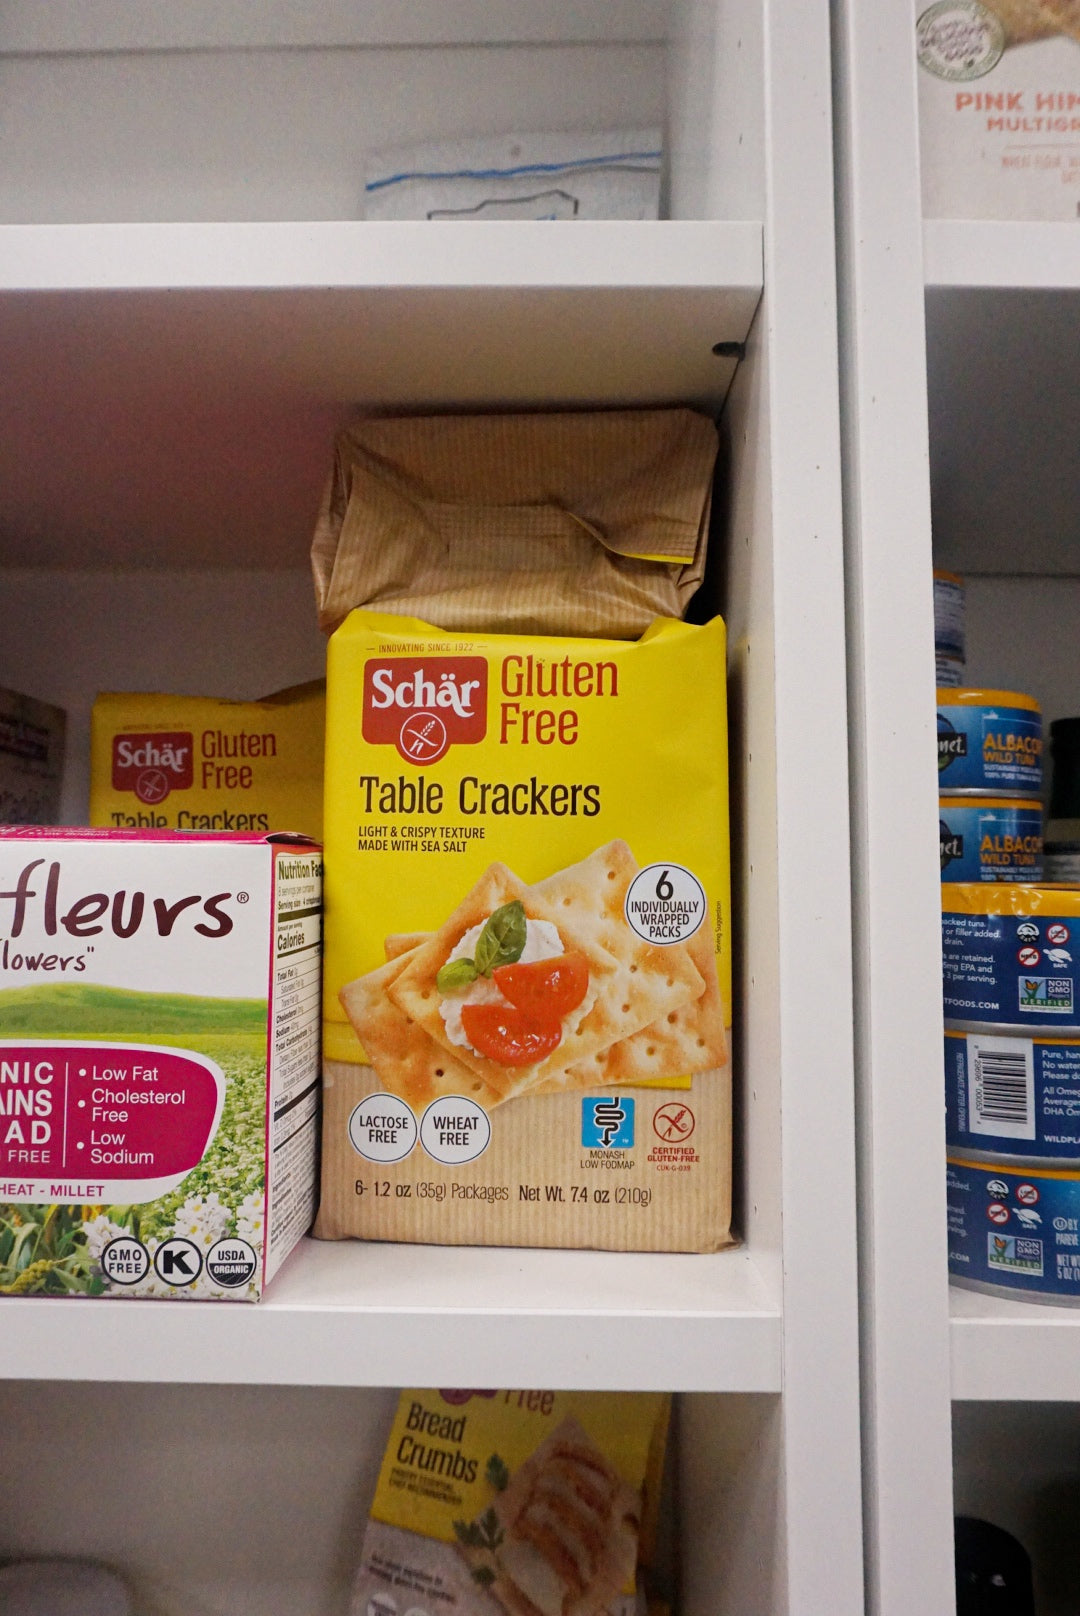 Schar Gluten Free Table Crackers 7.4 oz - Larchmont